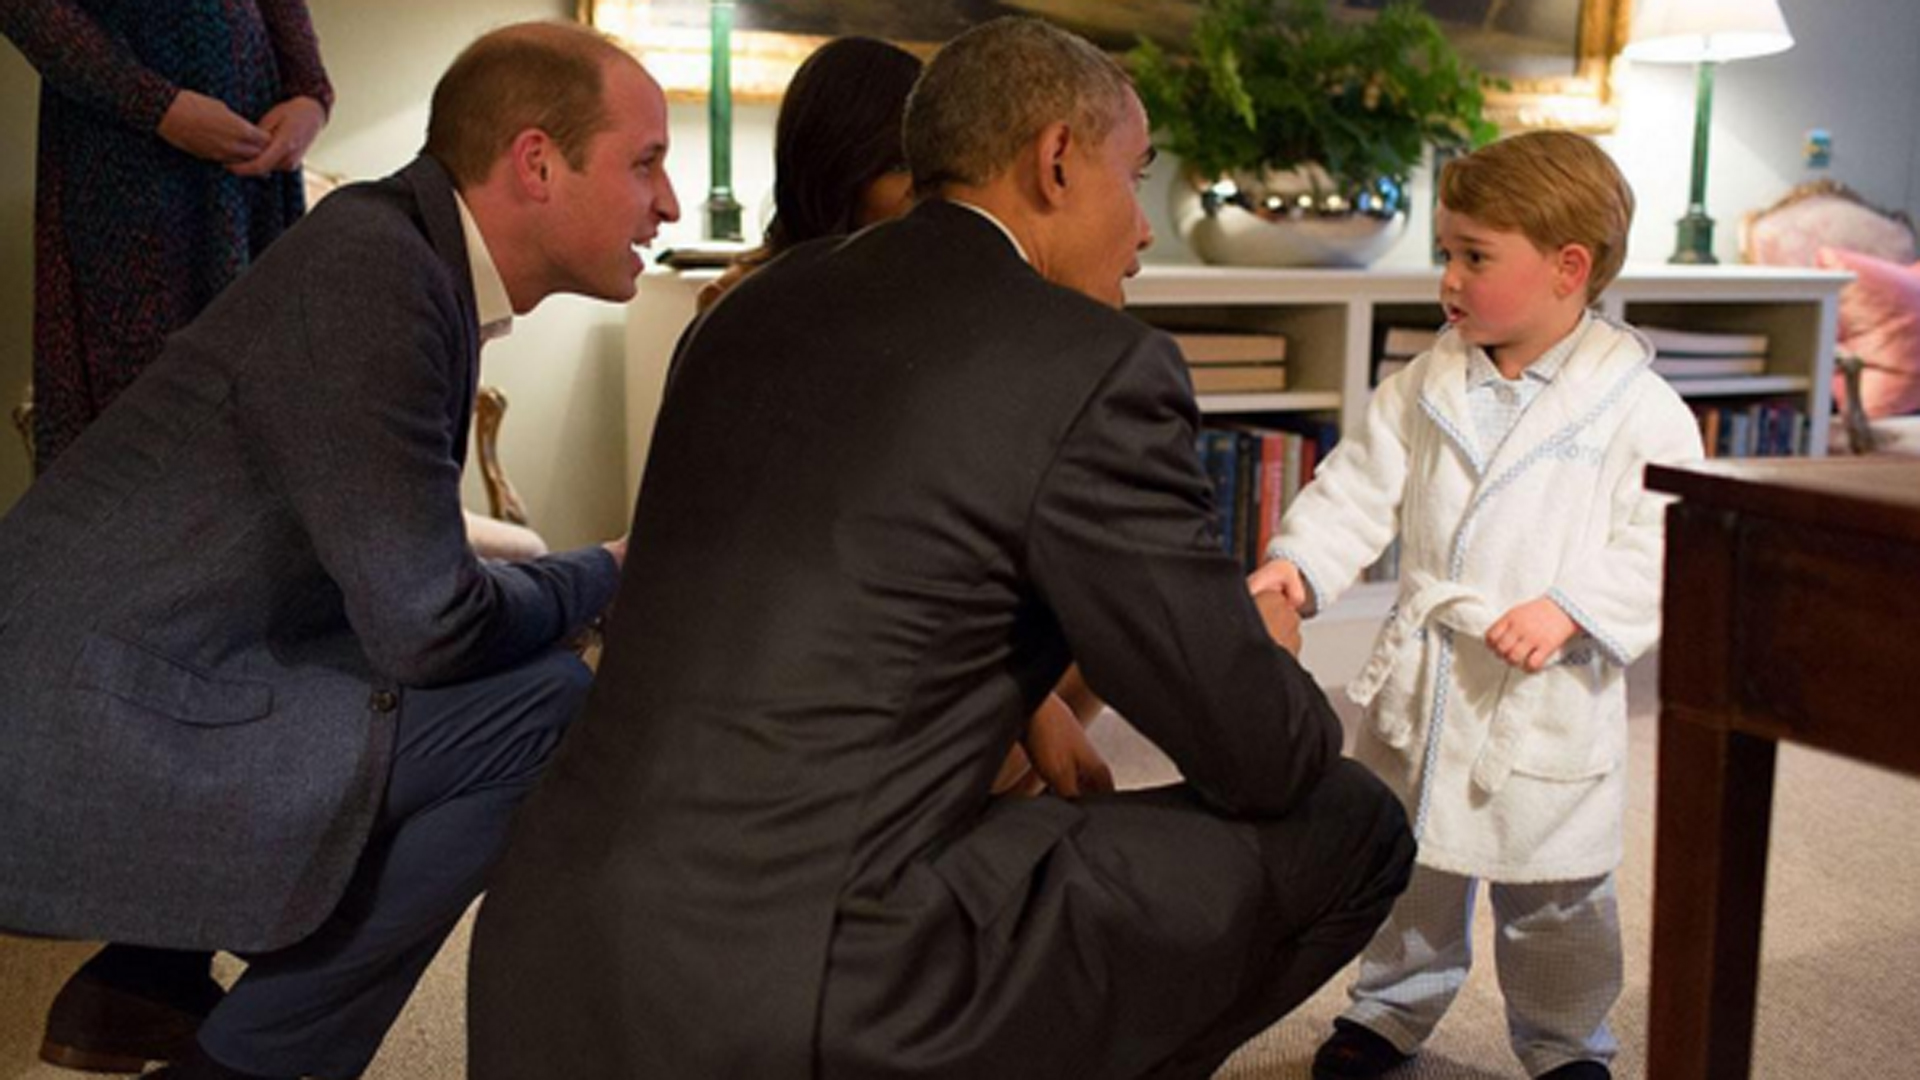 Kensington Palace posted this photo of Prince George meeting President Barack Obama on April 22, 2016.